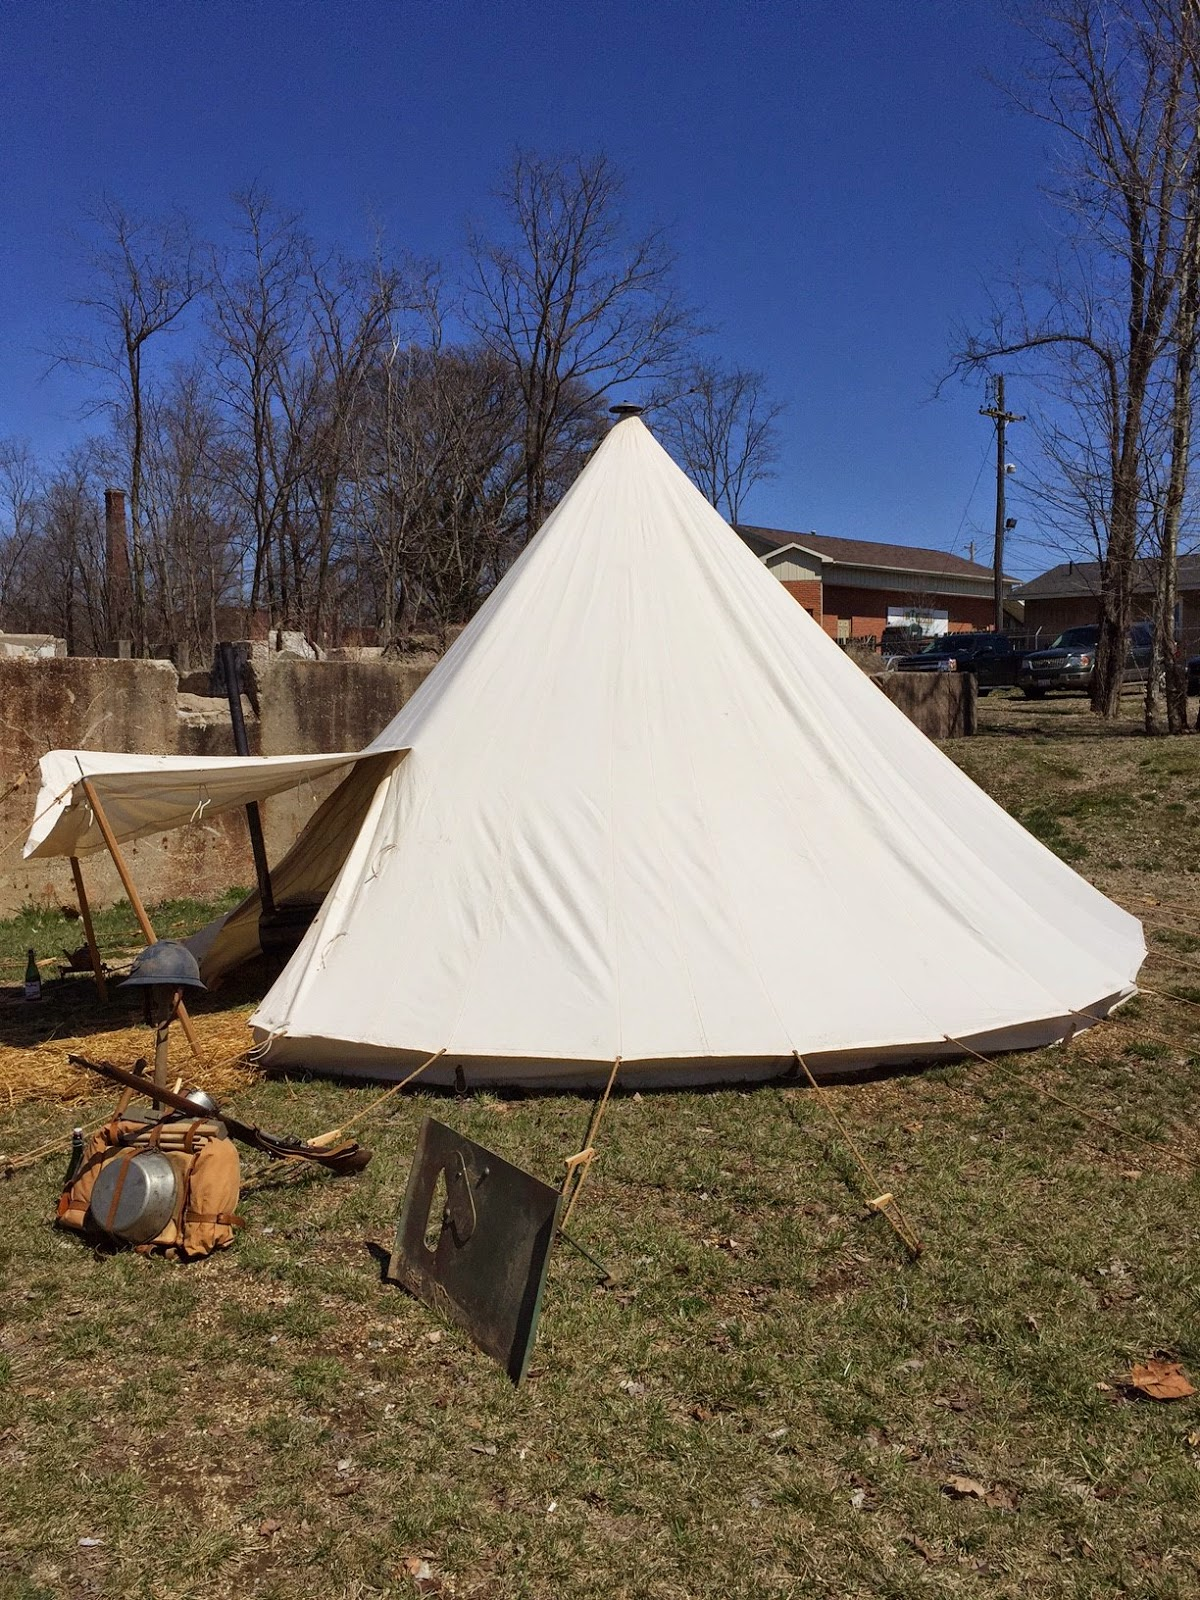 World War One French Conical Tent from Armbruster & World War One French Conical Tent from Armbruster | Armbruster ...